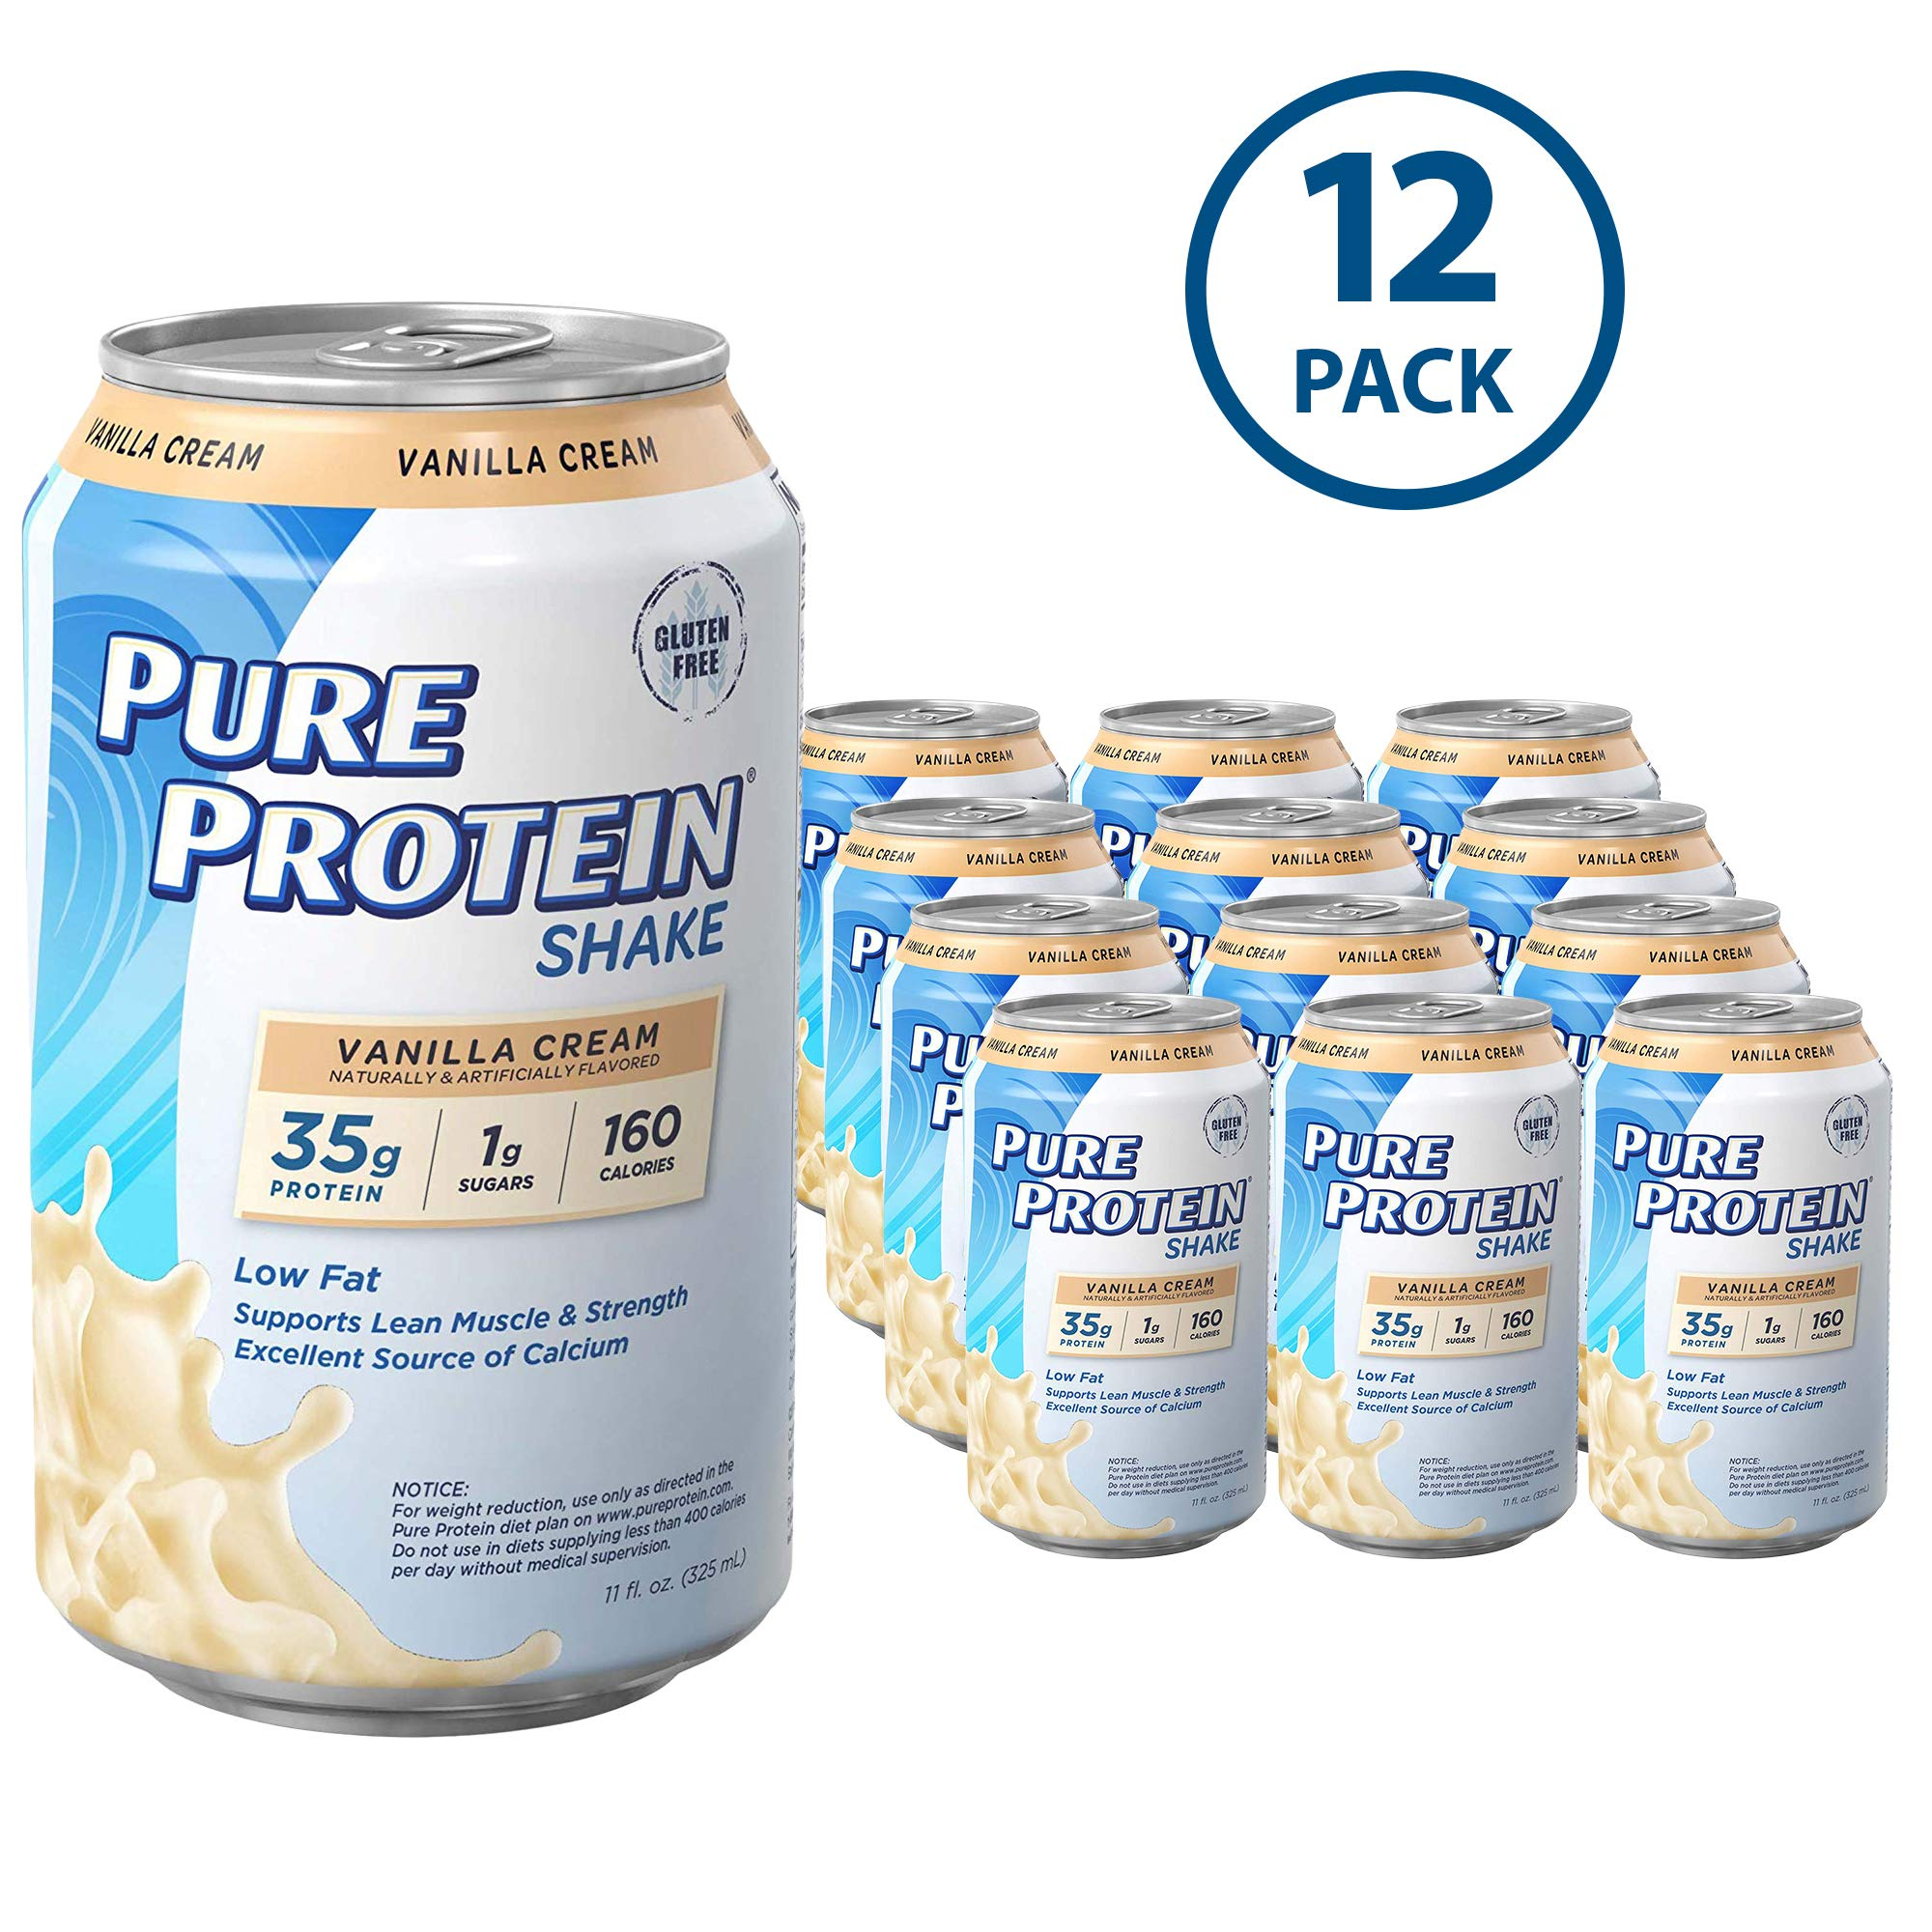 Pure Protein Shakes, Ready to Drink and Convenient for Meal Replacement, Vanilla Cream,